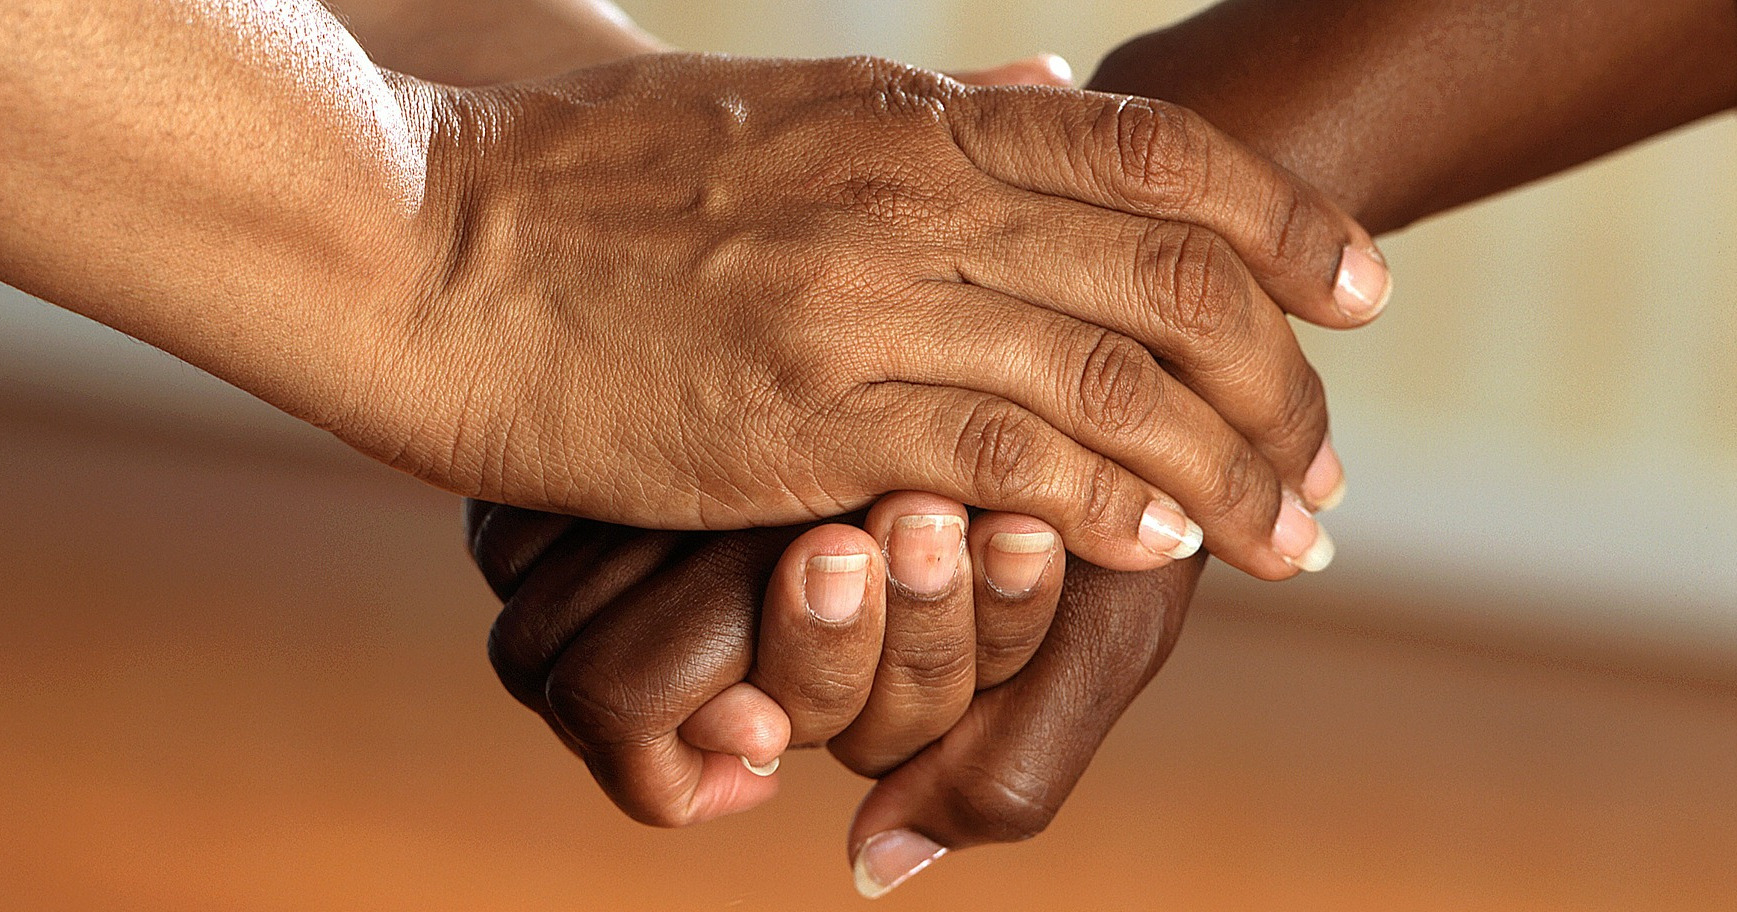 two people's hands clasped